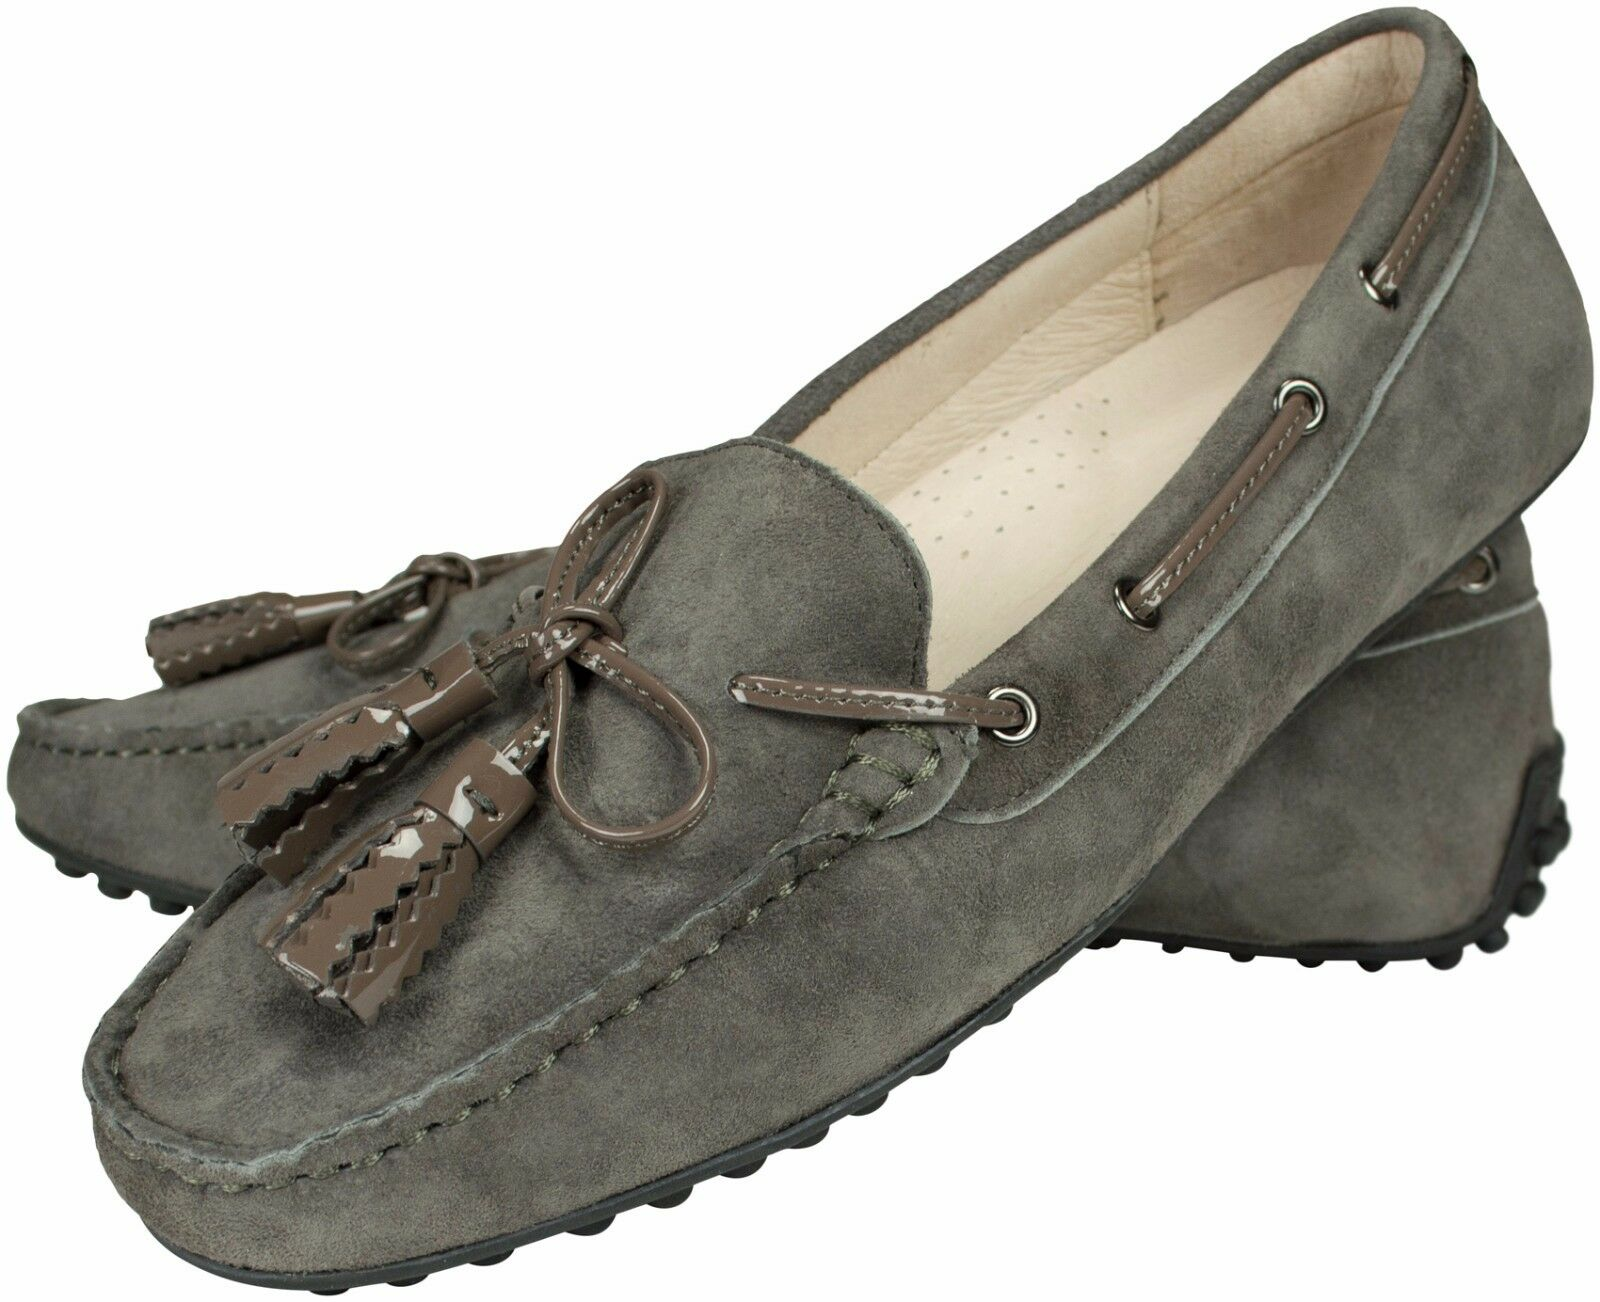 Mokassins Velours Leder grey Noppensohle loafer leather grey pebbled rubber sole